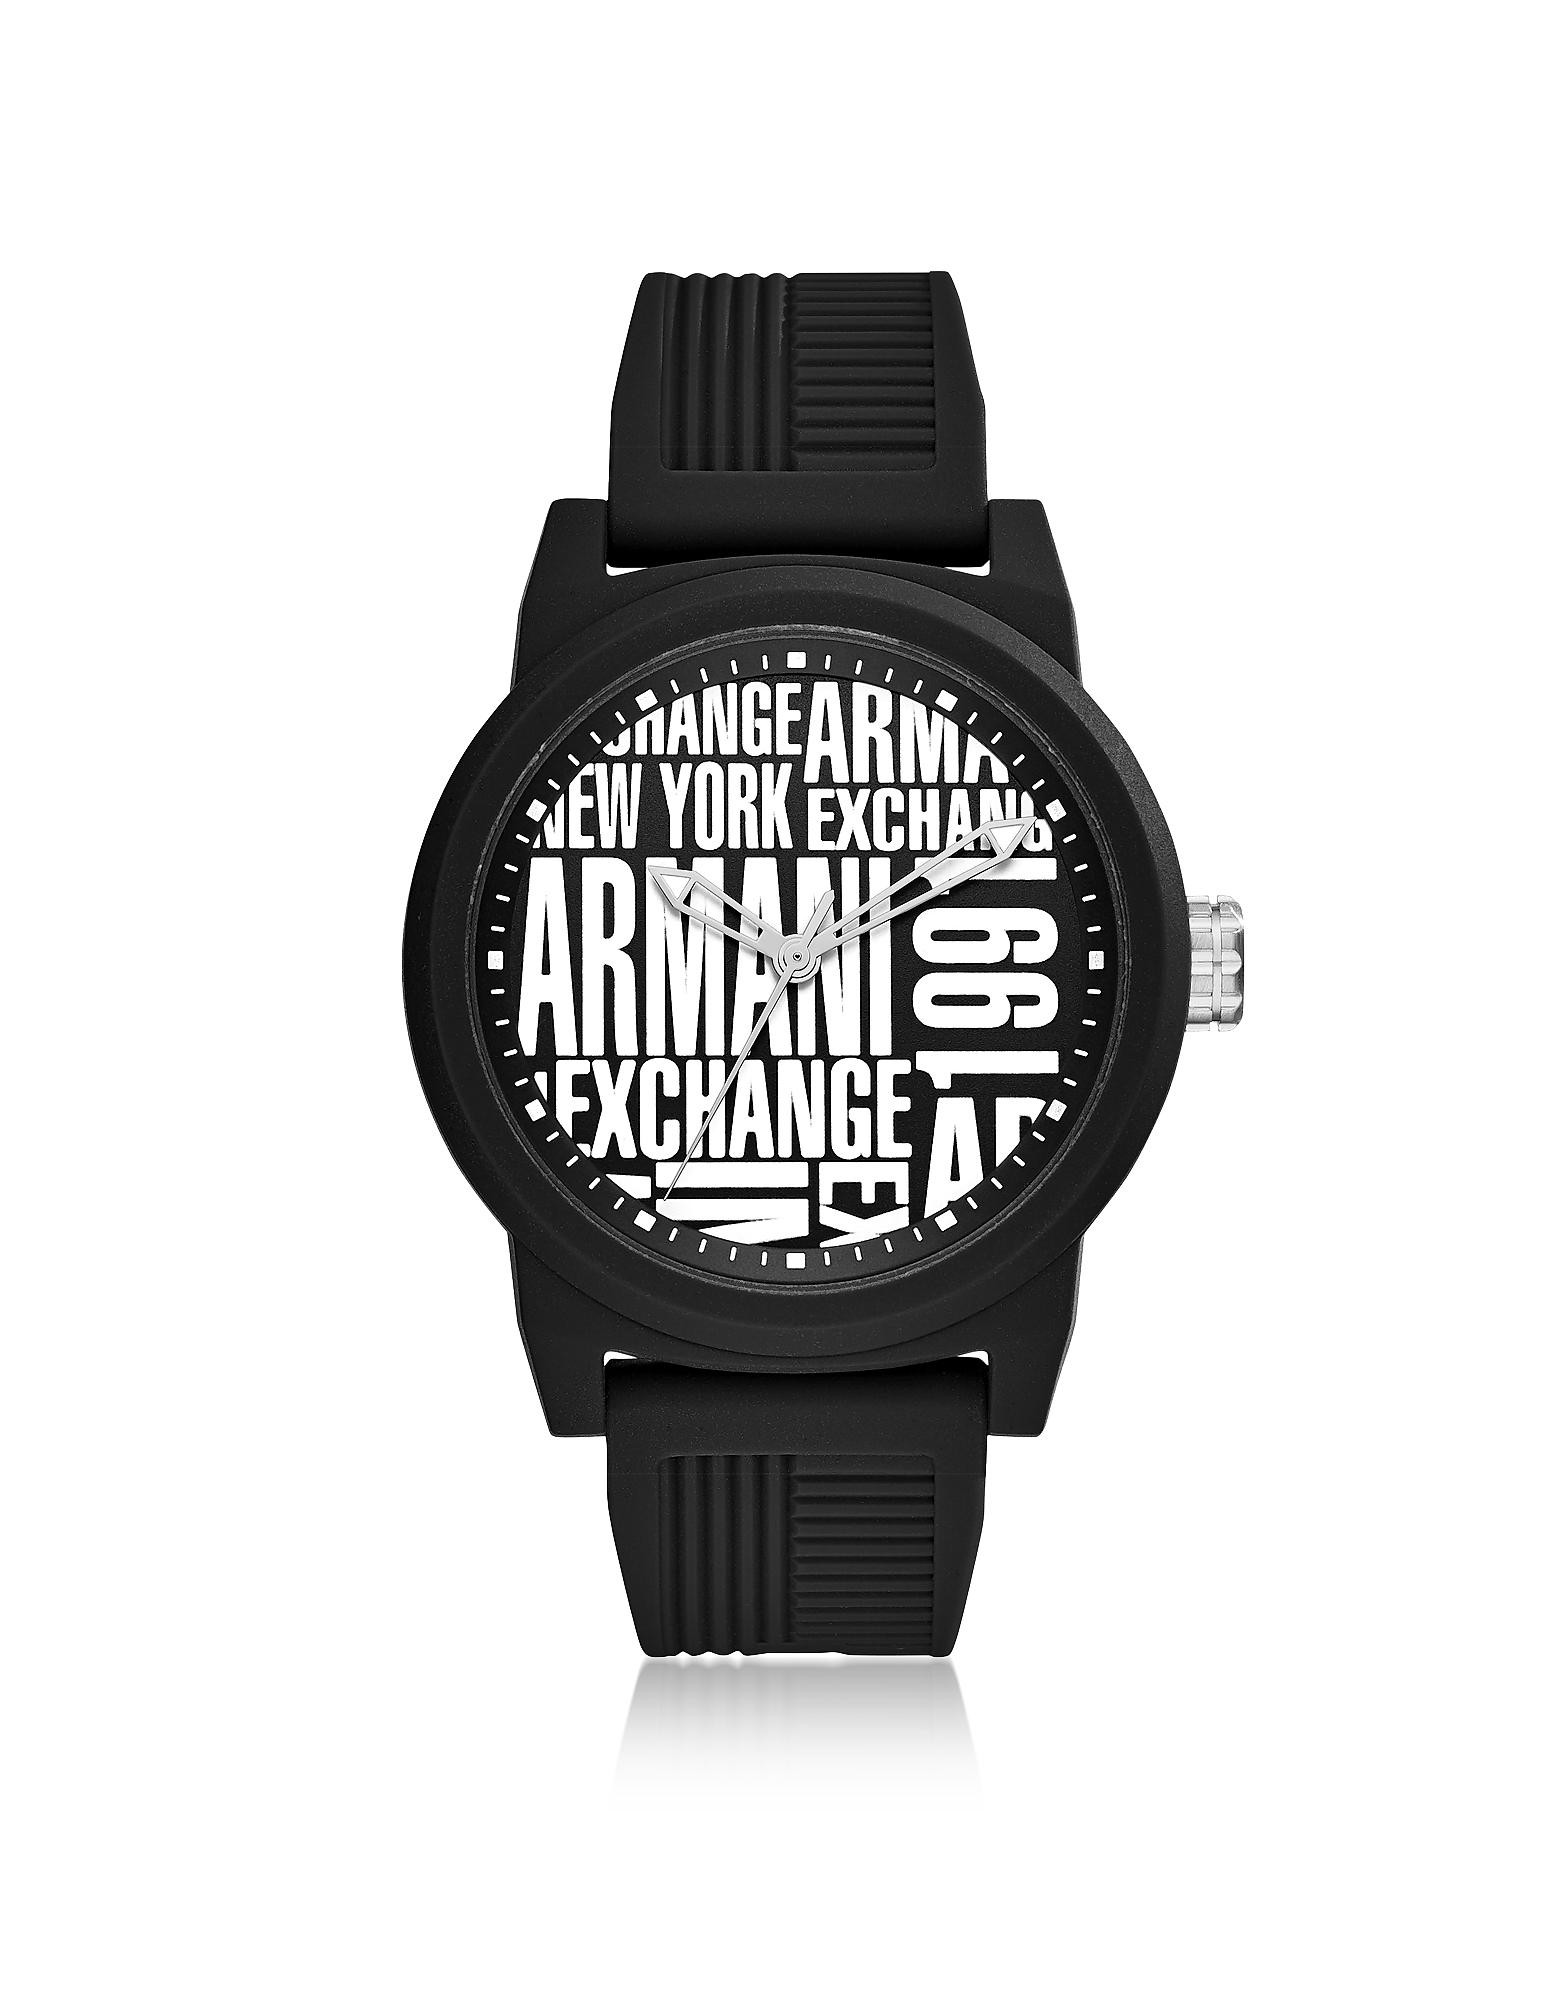 27f25550d Armani Exchange Atlc Black Silicone Men's Watch in Black for Men - Lyst